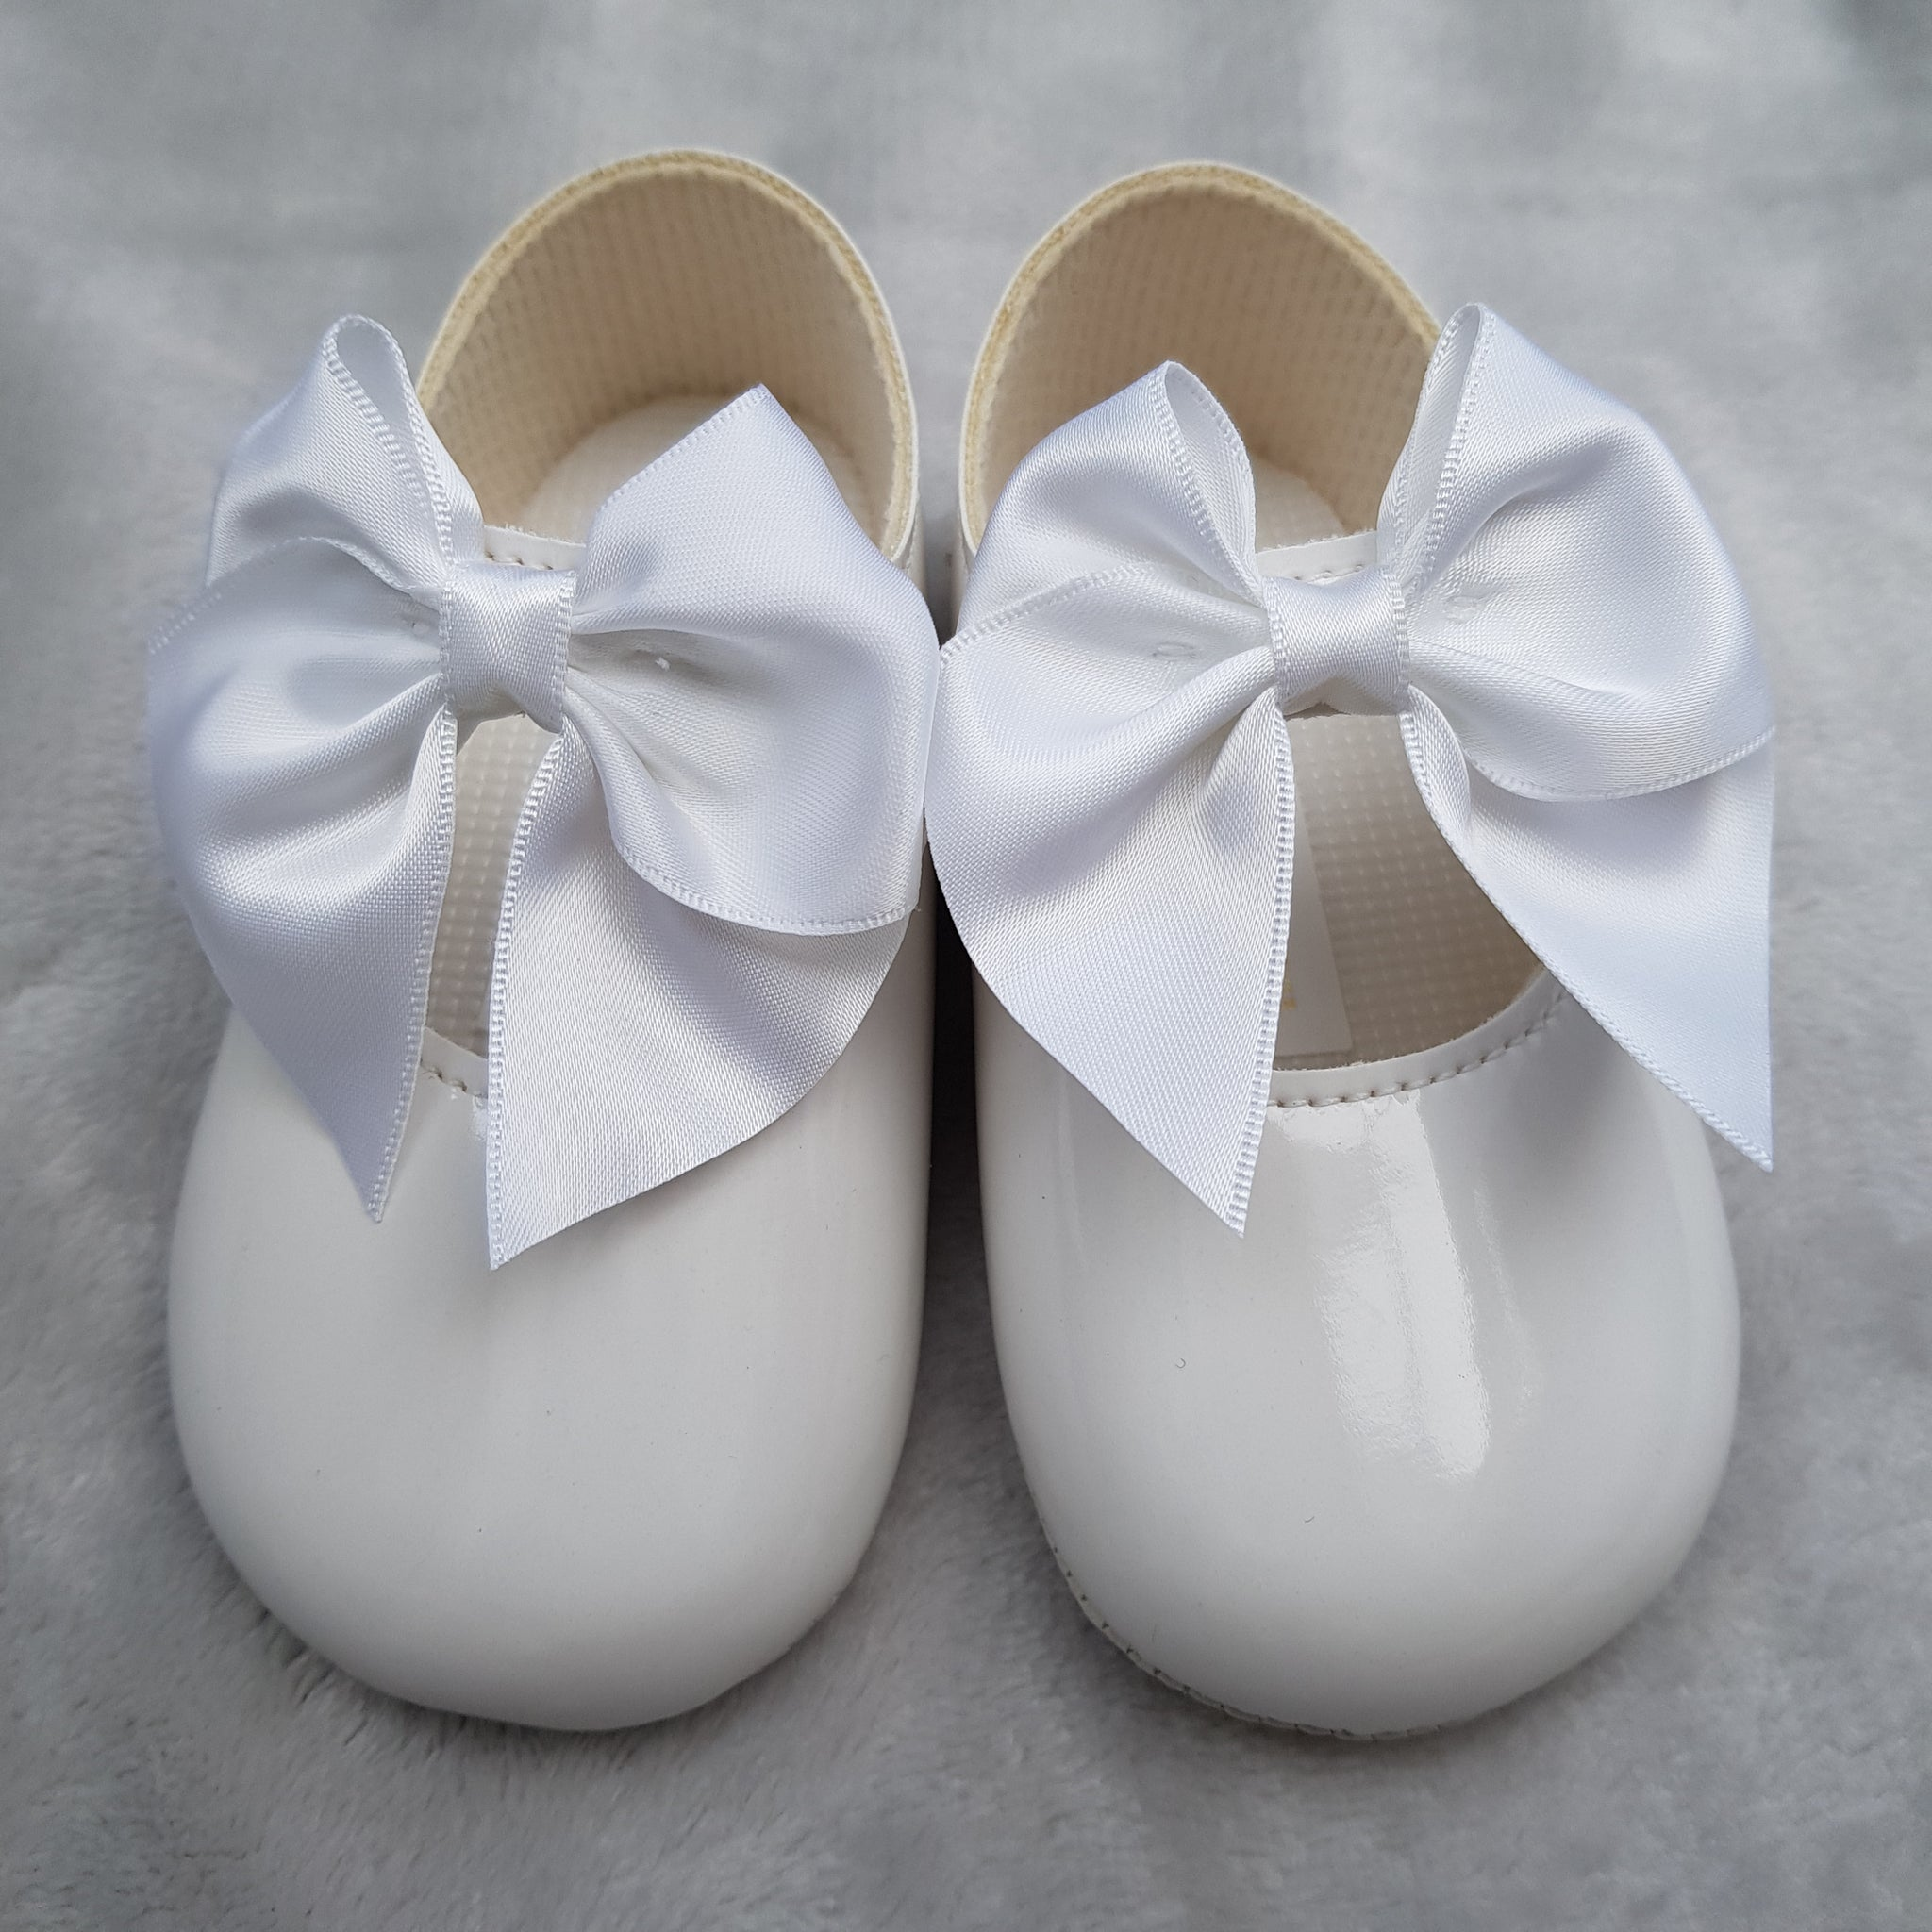 White Large Bow Pram Shoes - Sienna's Spanish Baby